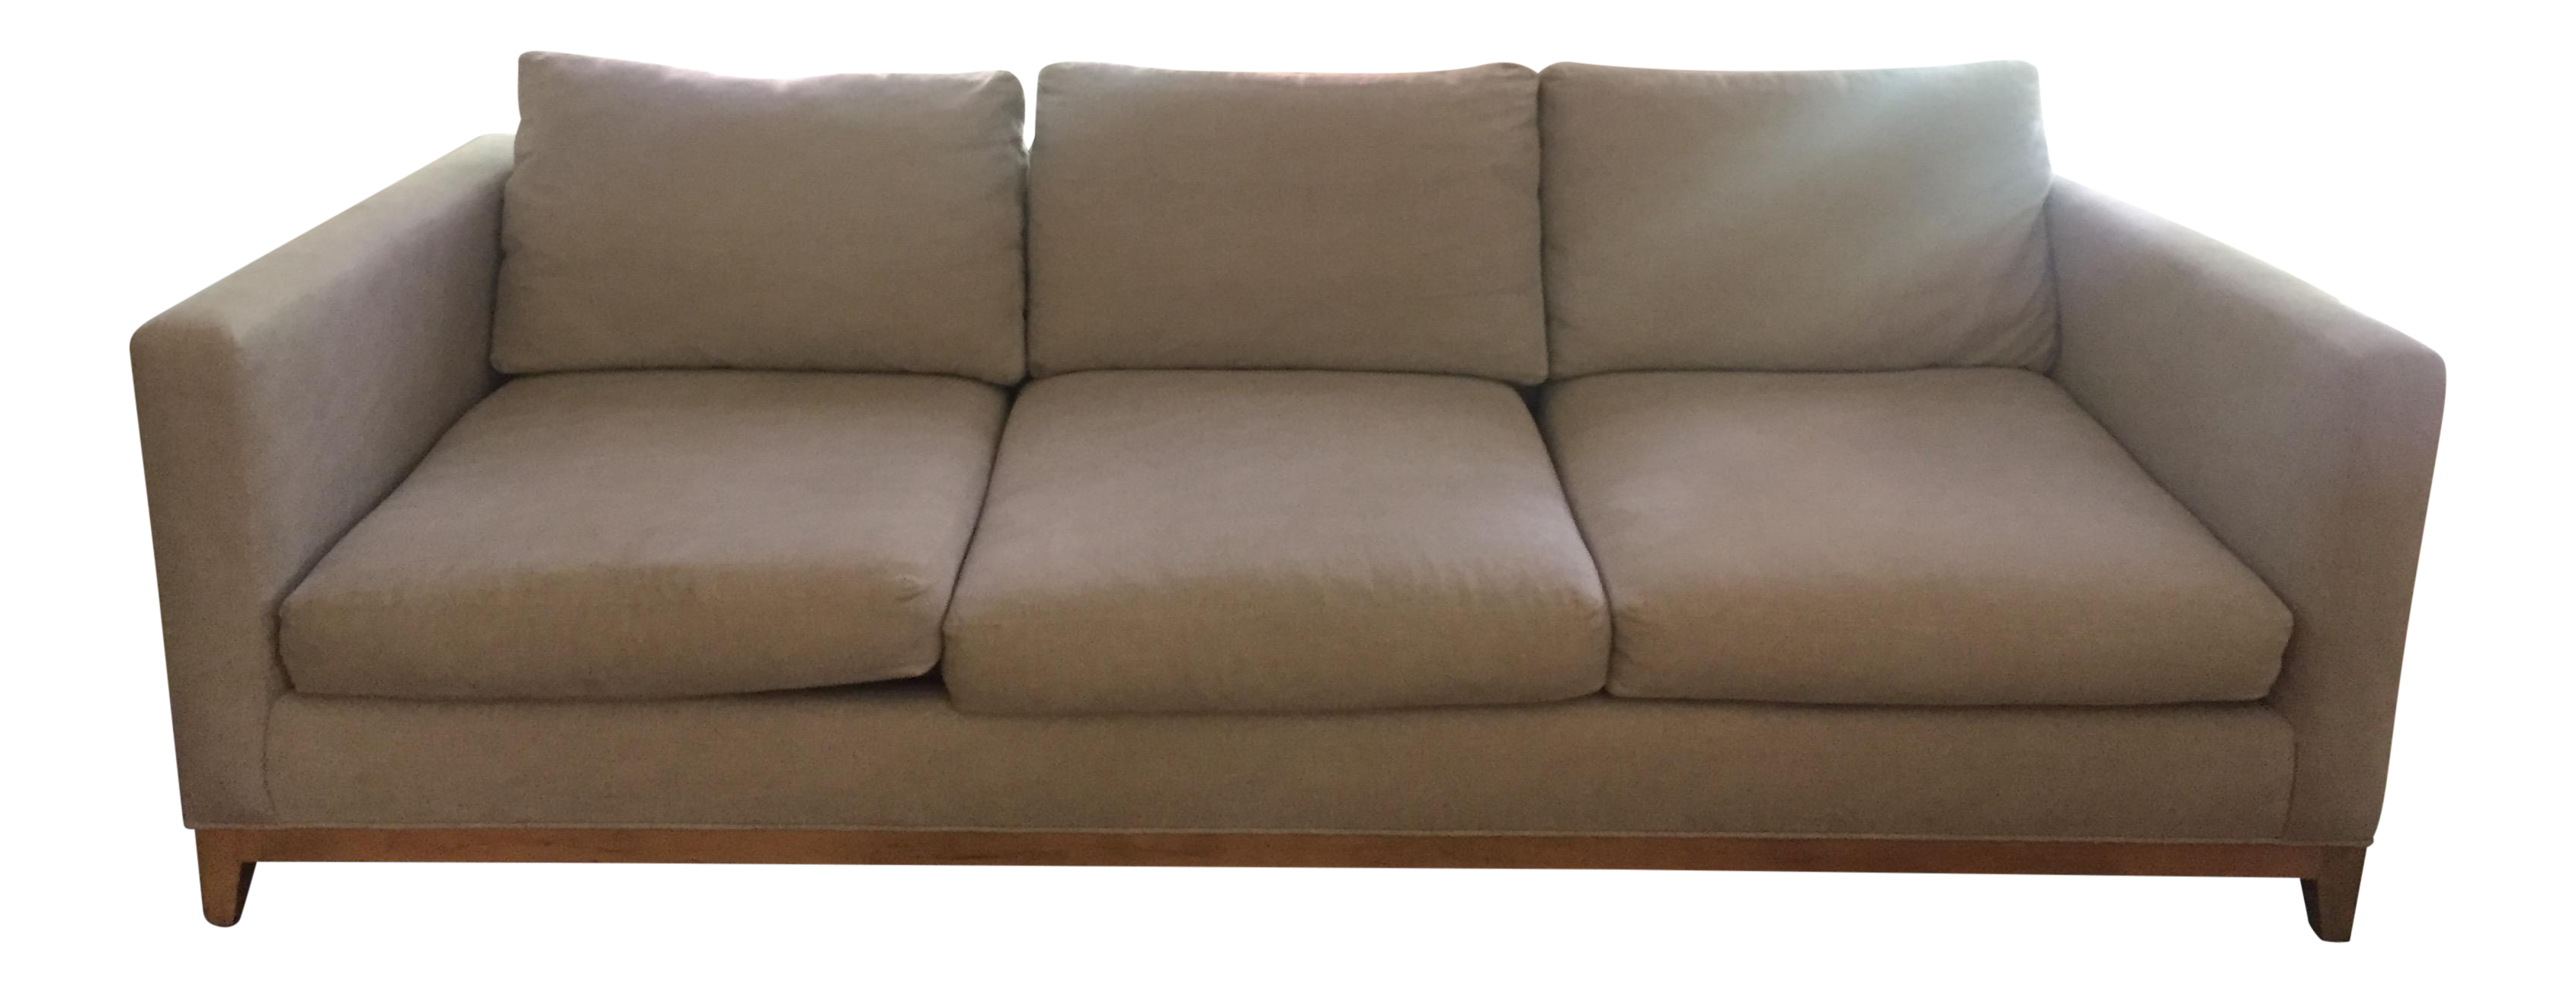 Crate and barrel taraval sofa couch chairish